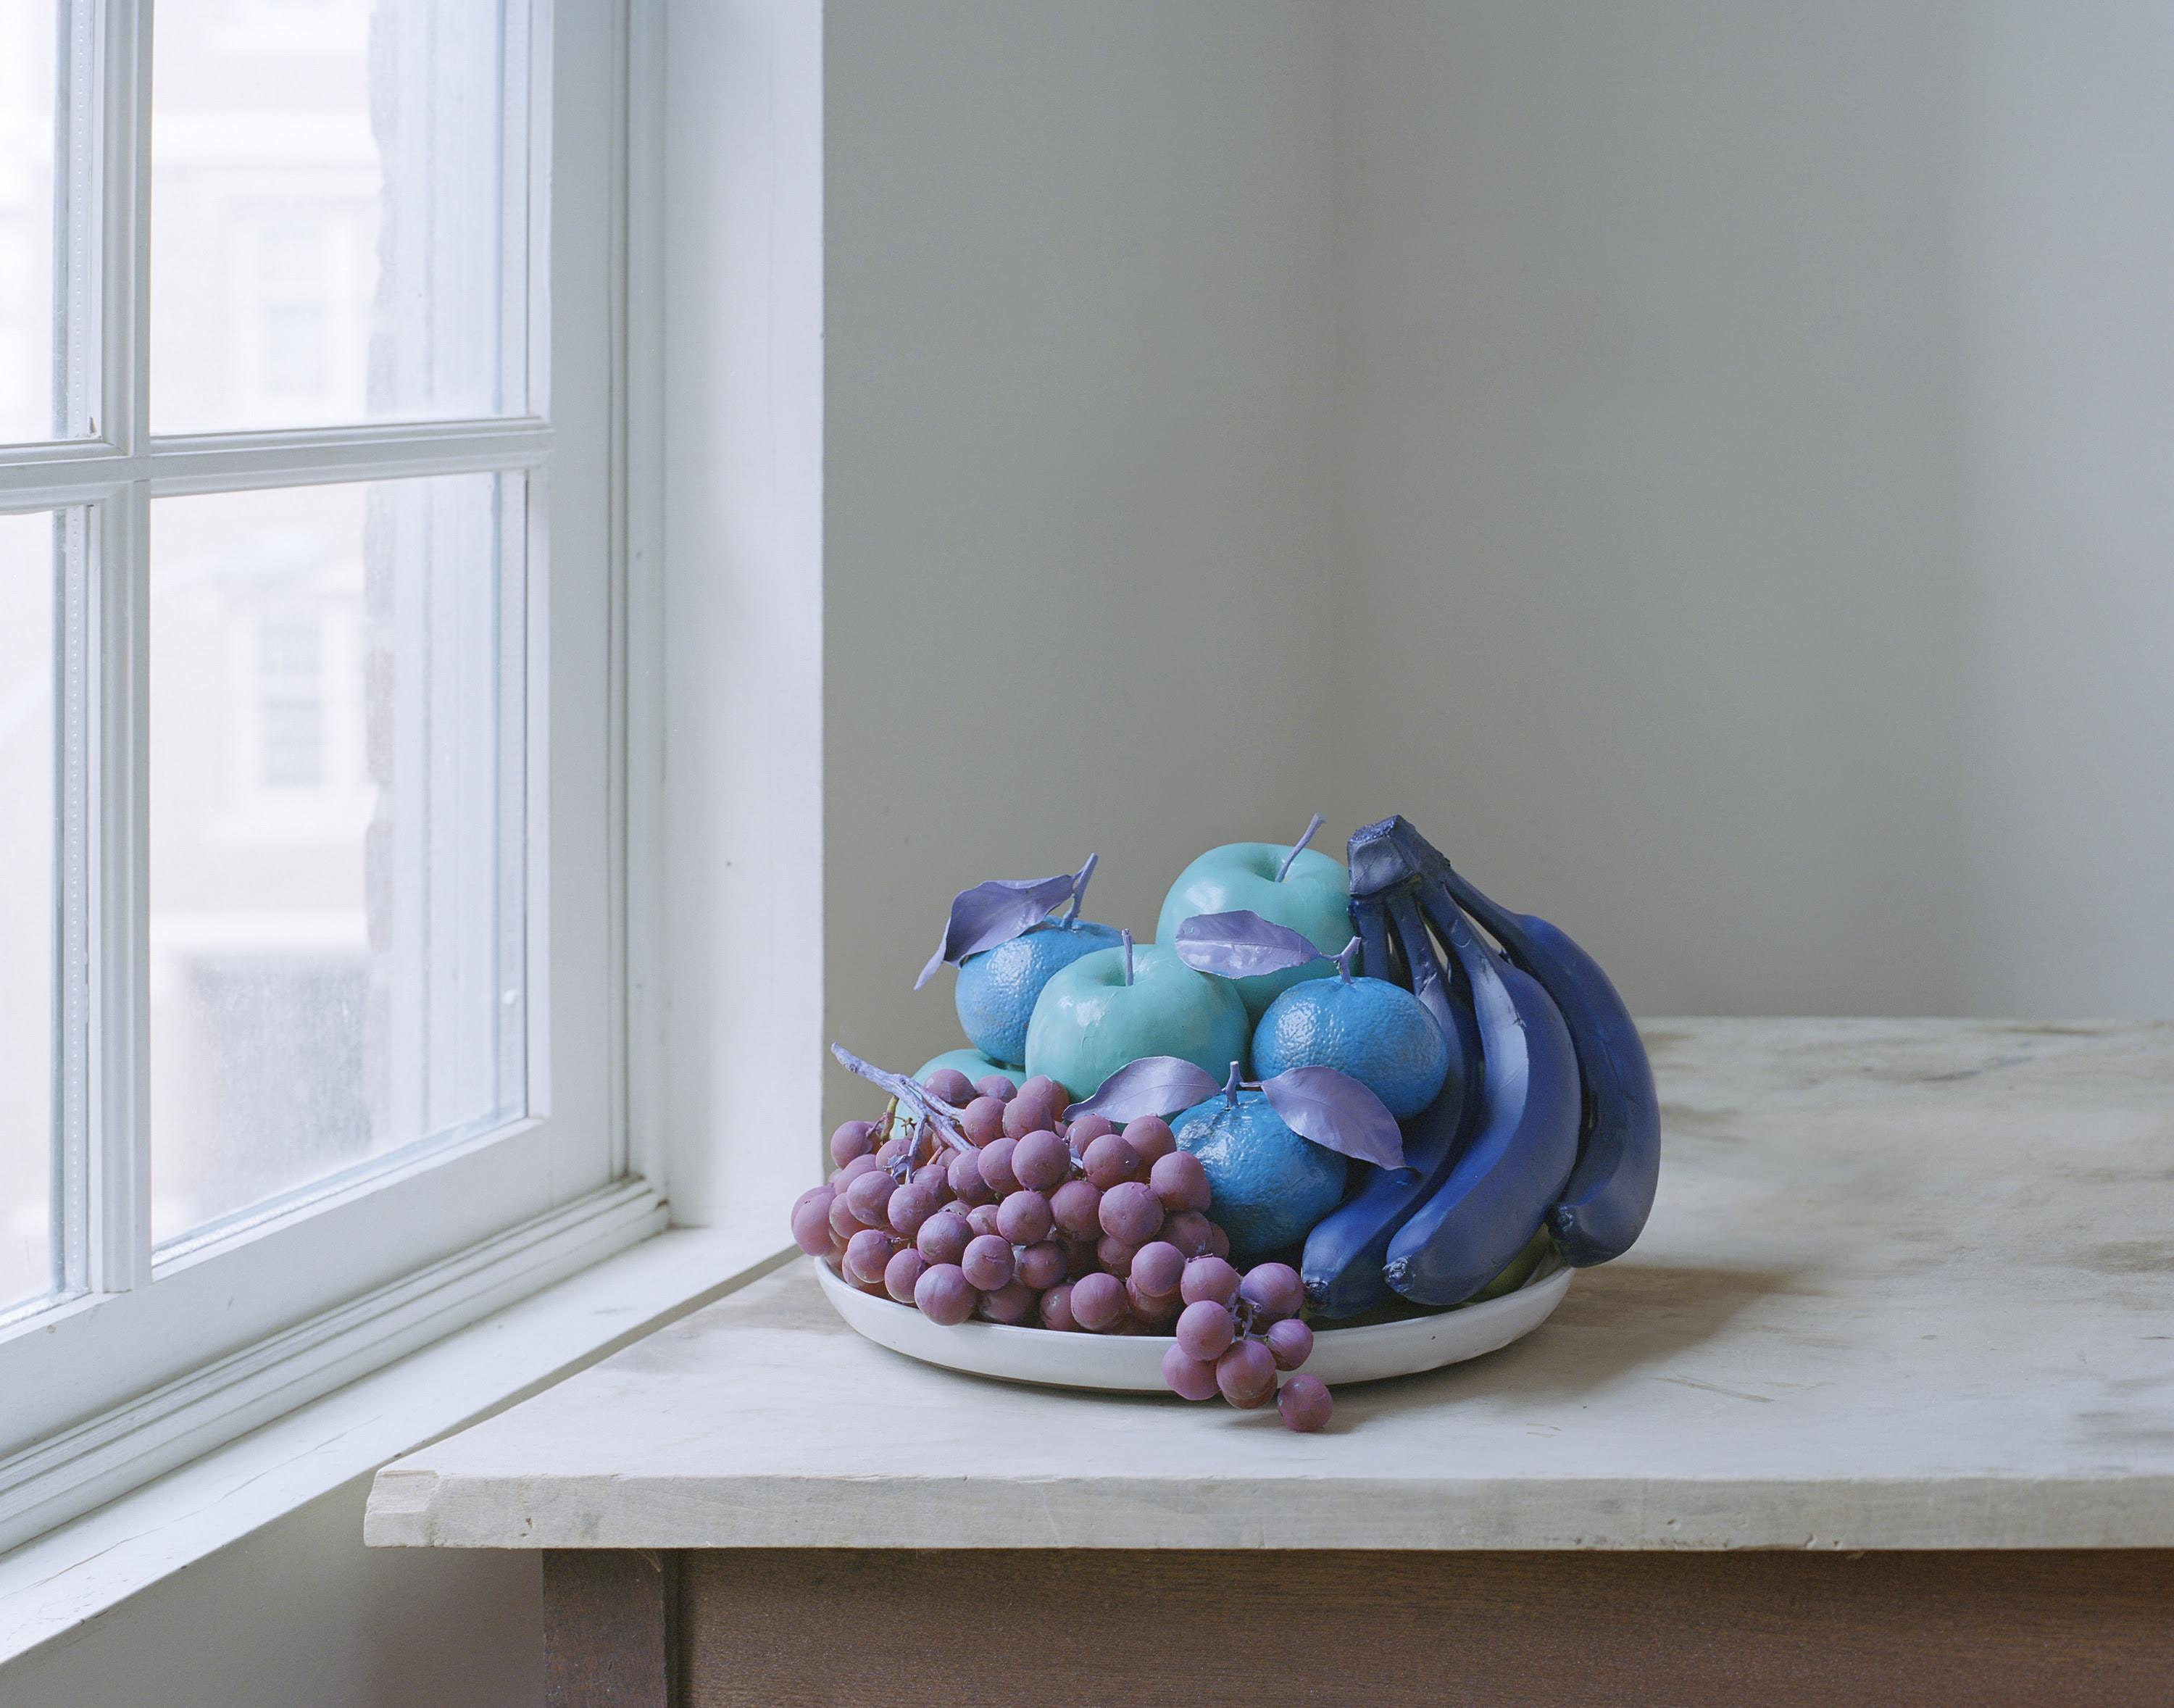 This workshop with visual artist Darren Rigo will cover an introduction to strobe lights and how to use them to light still life compositions.